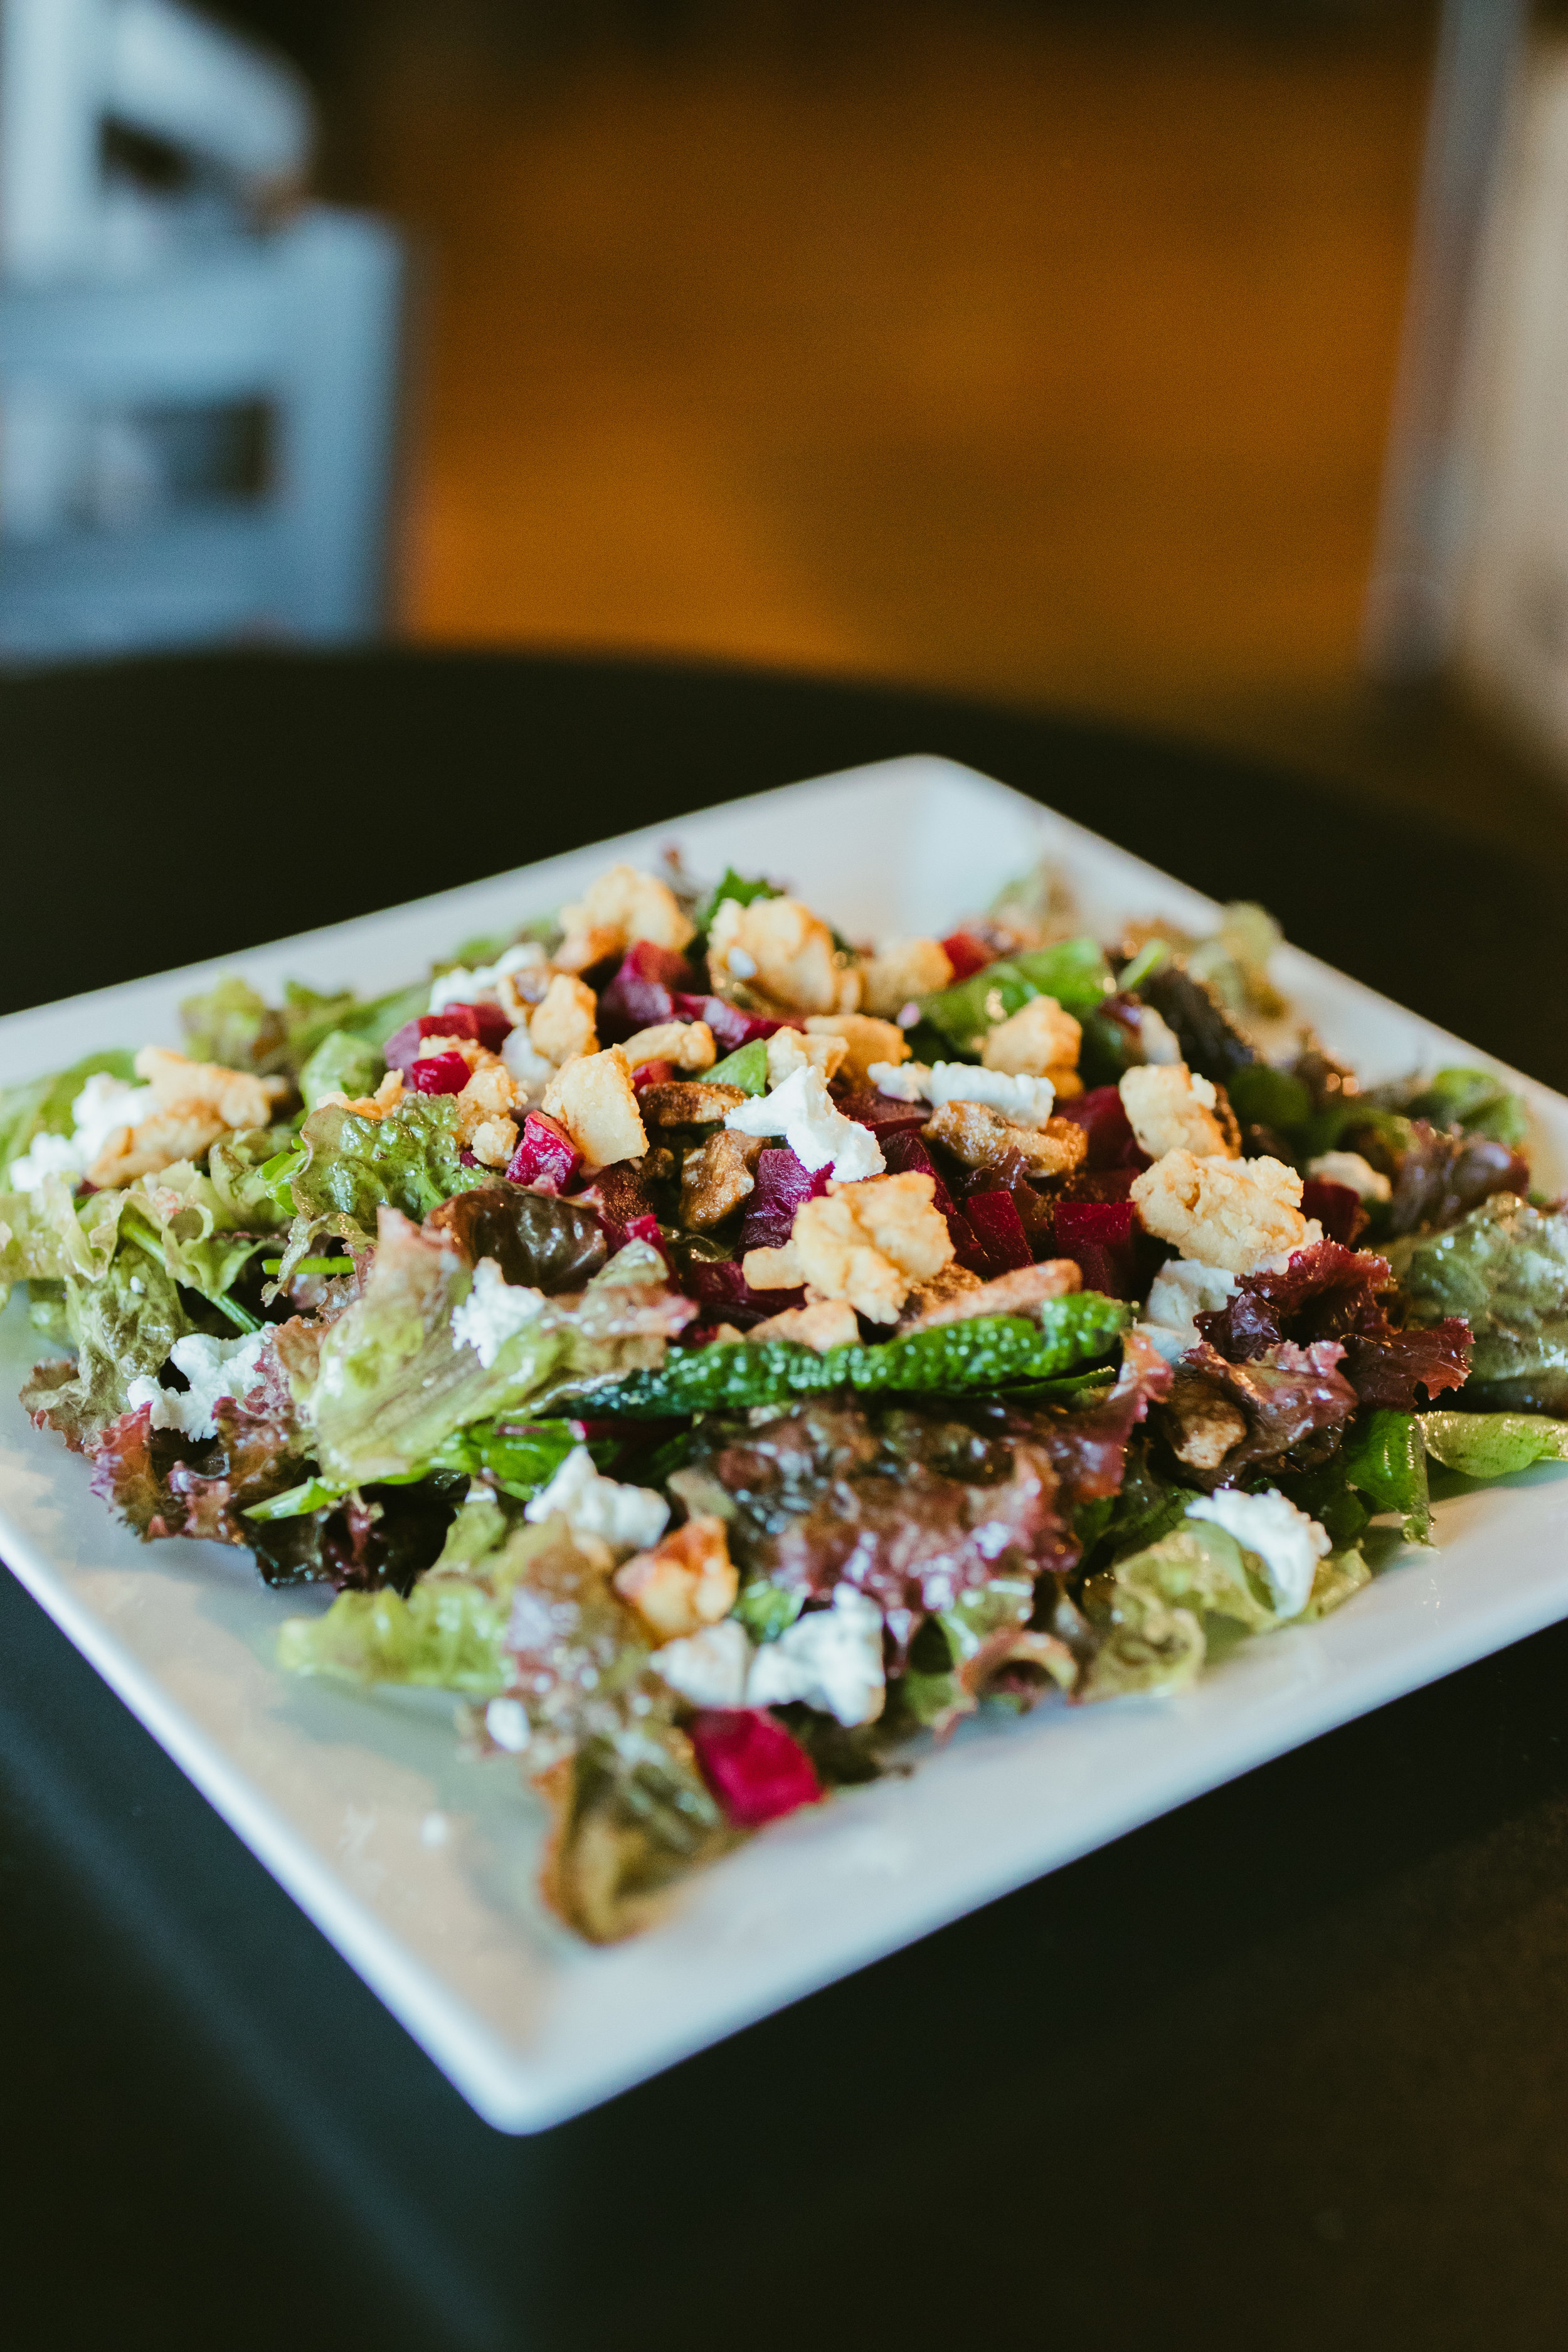 Freshly picked greens with roasted beets, candied walnuts, feta, and pork cracklings